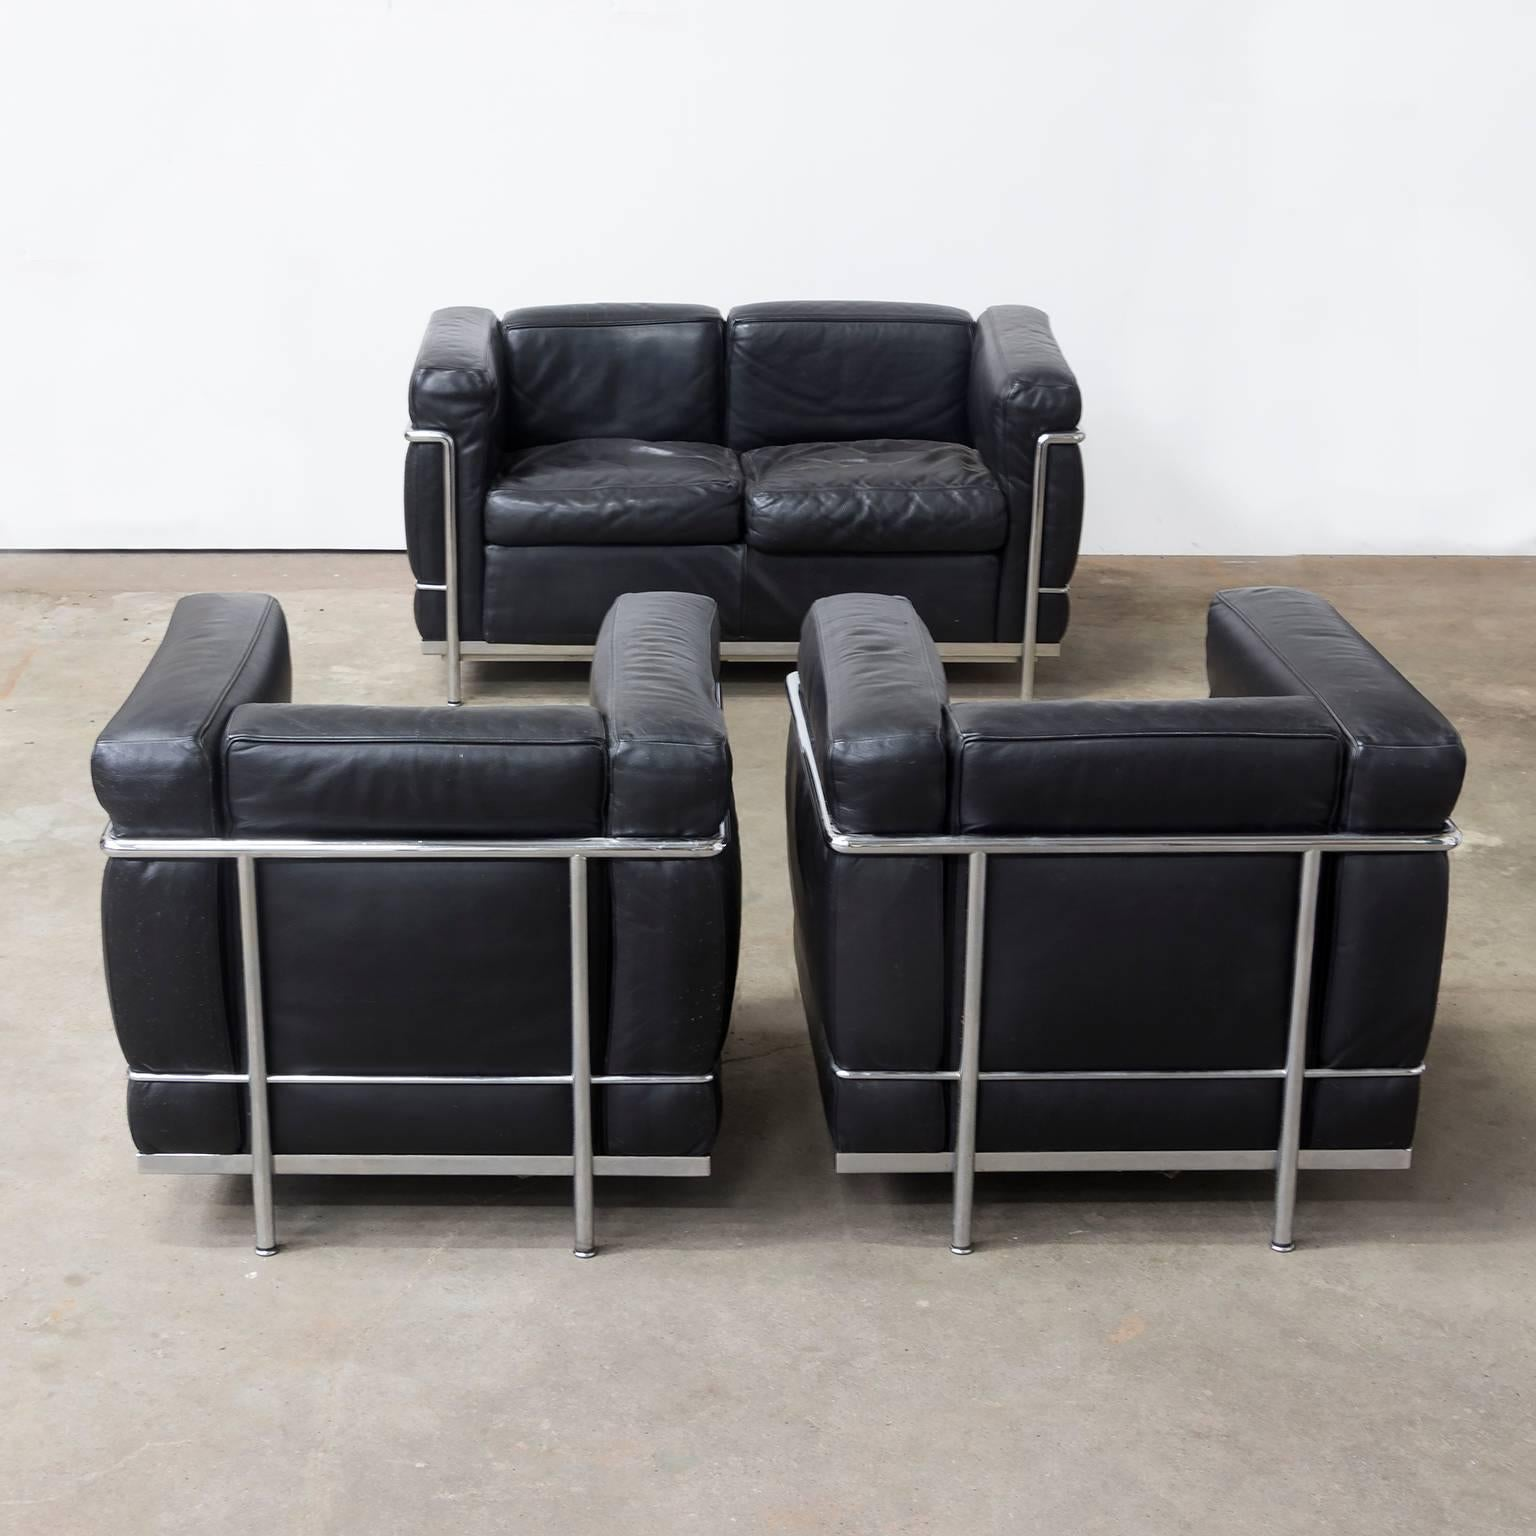 1928 Le Corbusier LC2 Easy Chair Black Leather by